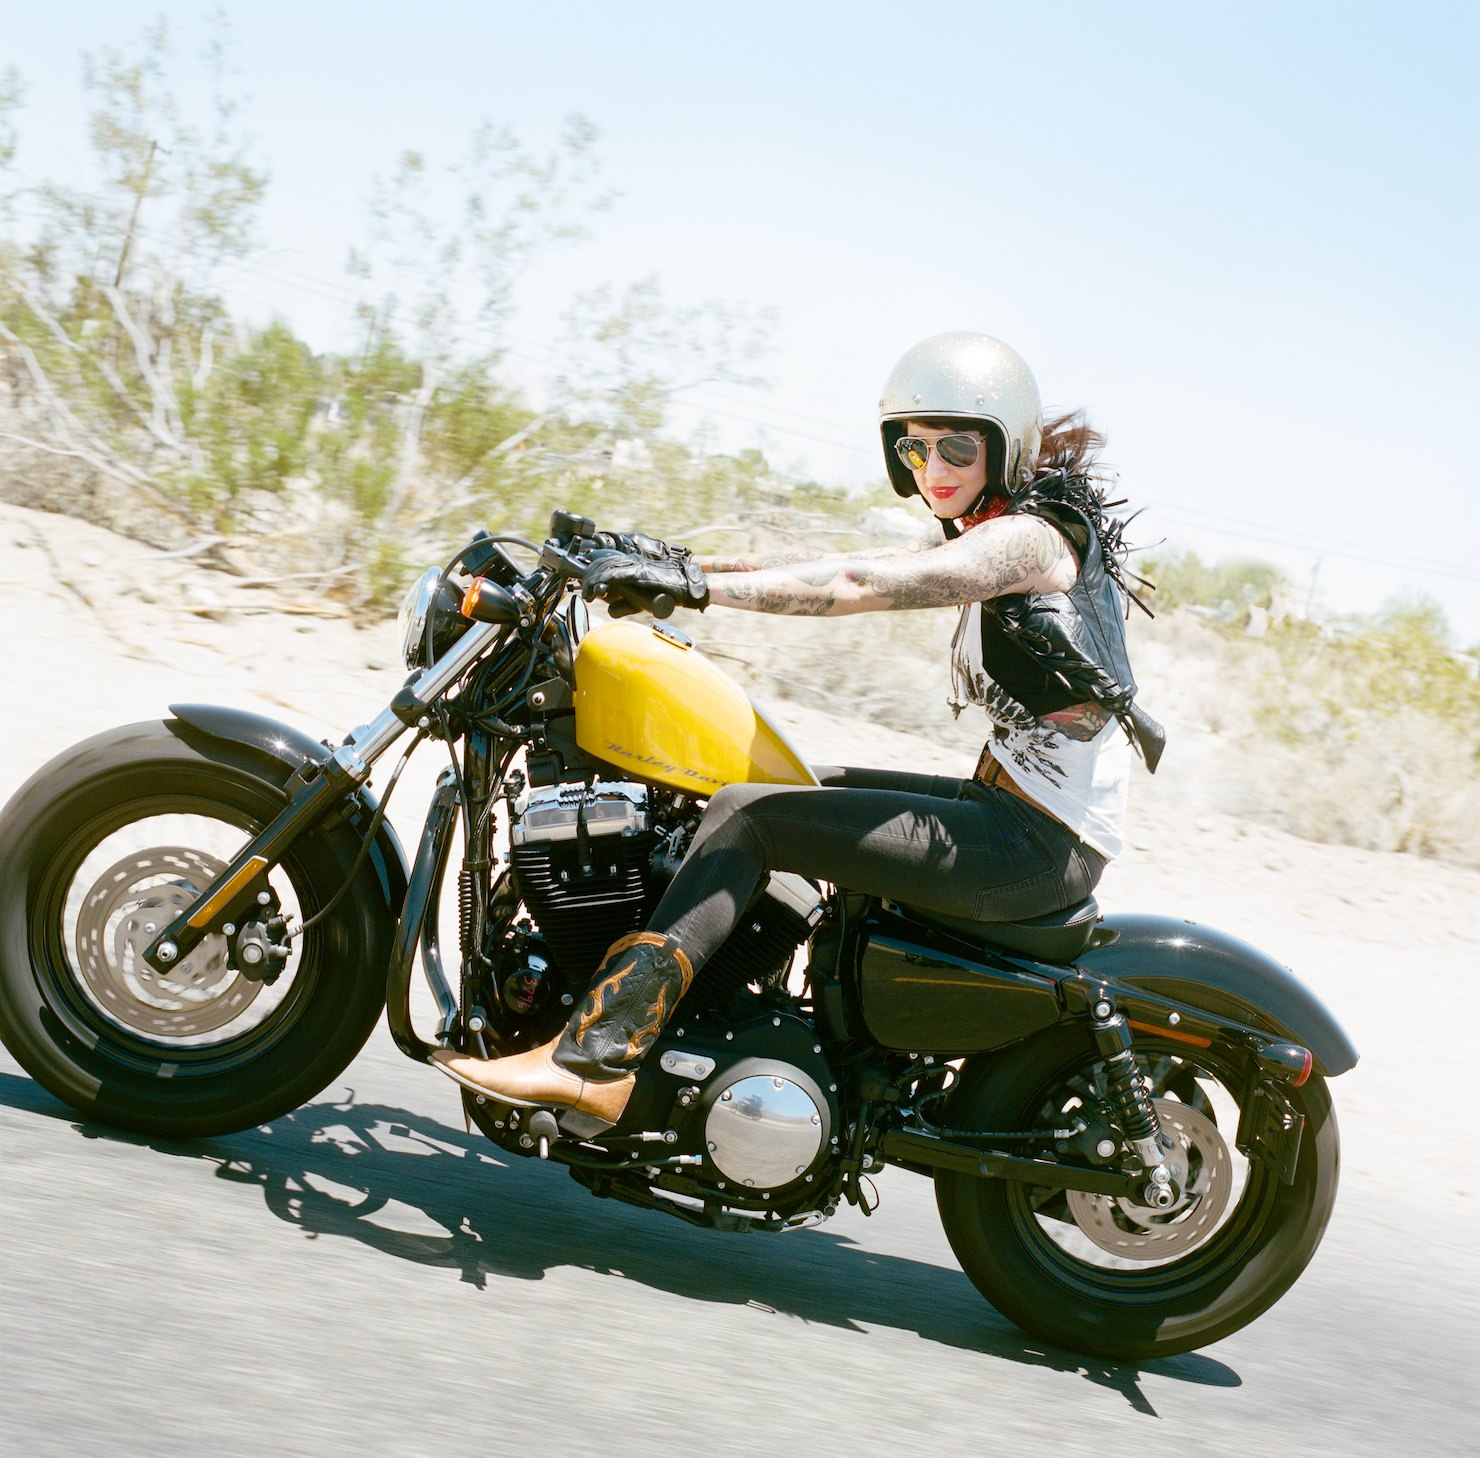 pictures-of-naked-women-on-motorcycle